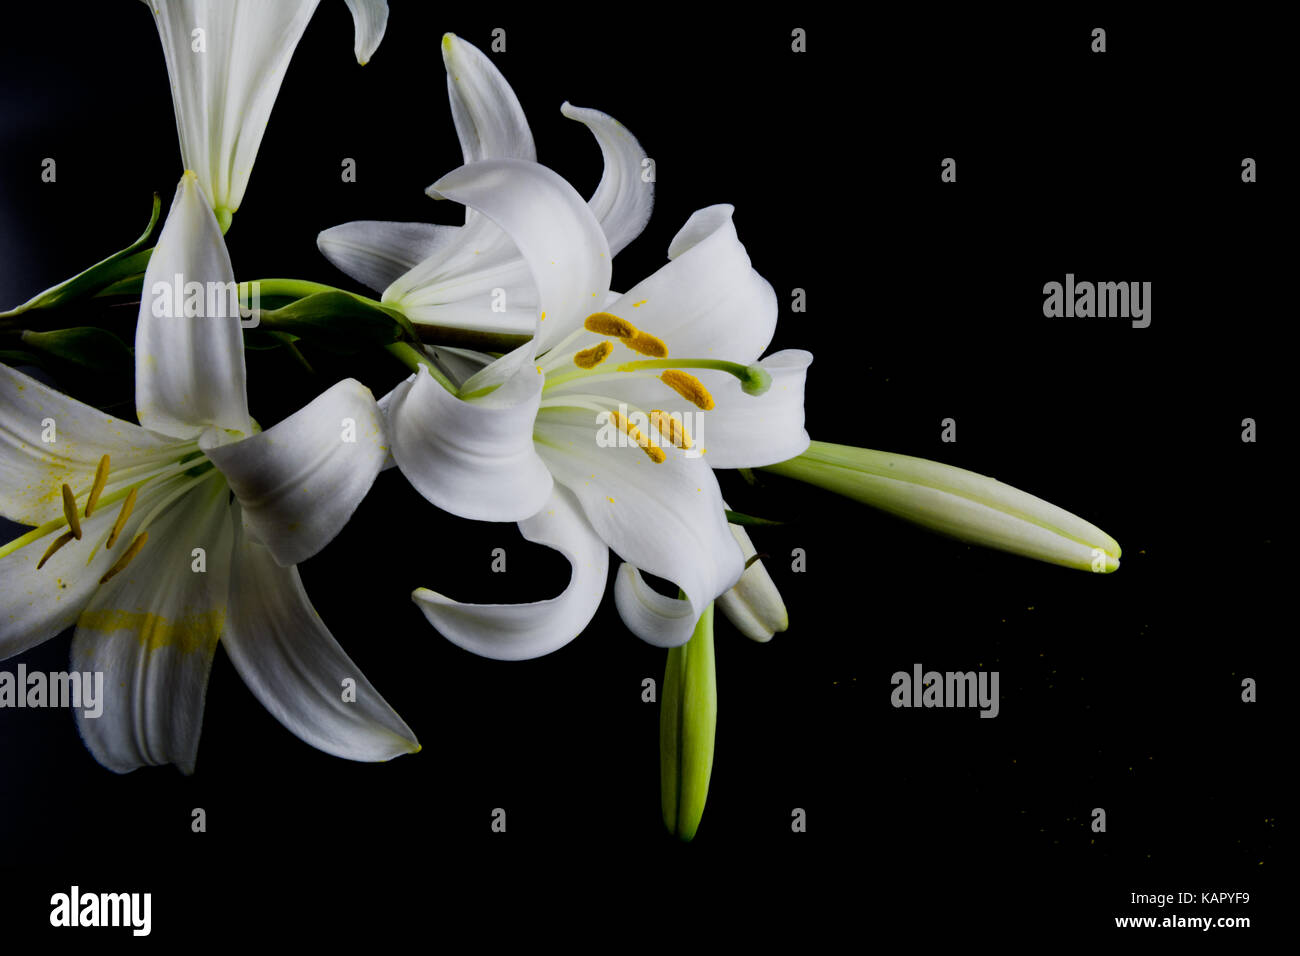 Flowers And Buds Of Lilies On A Black Background Stock Photo